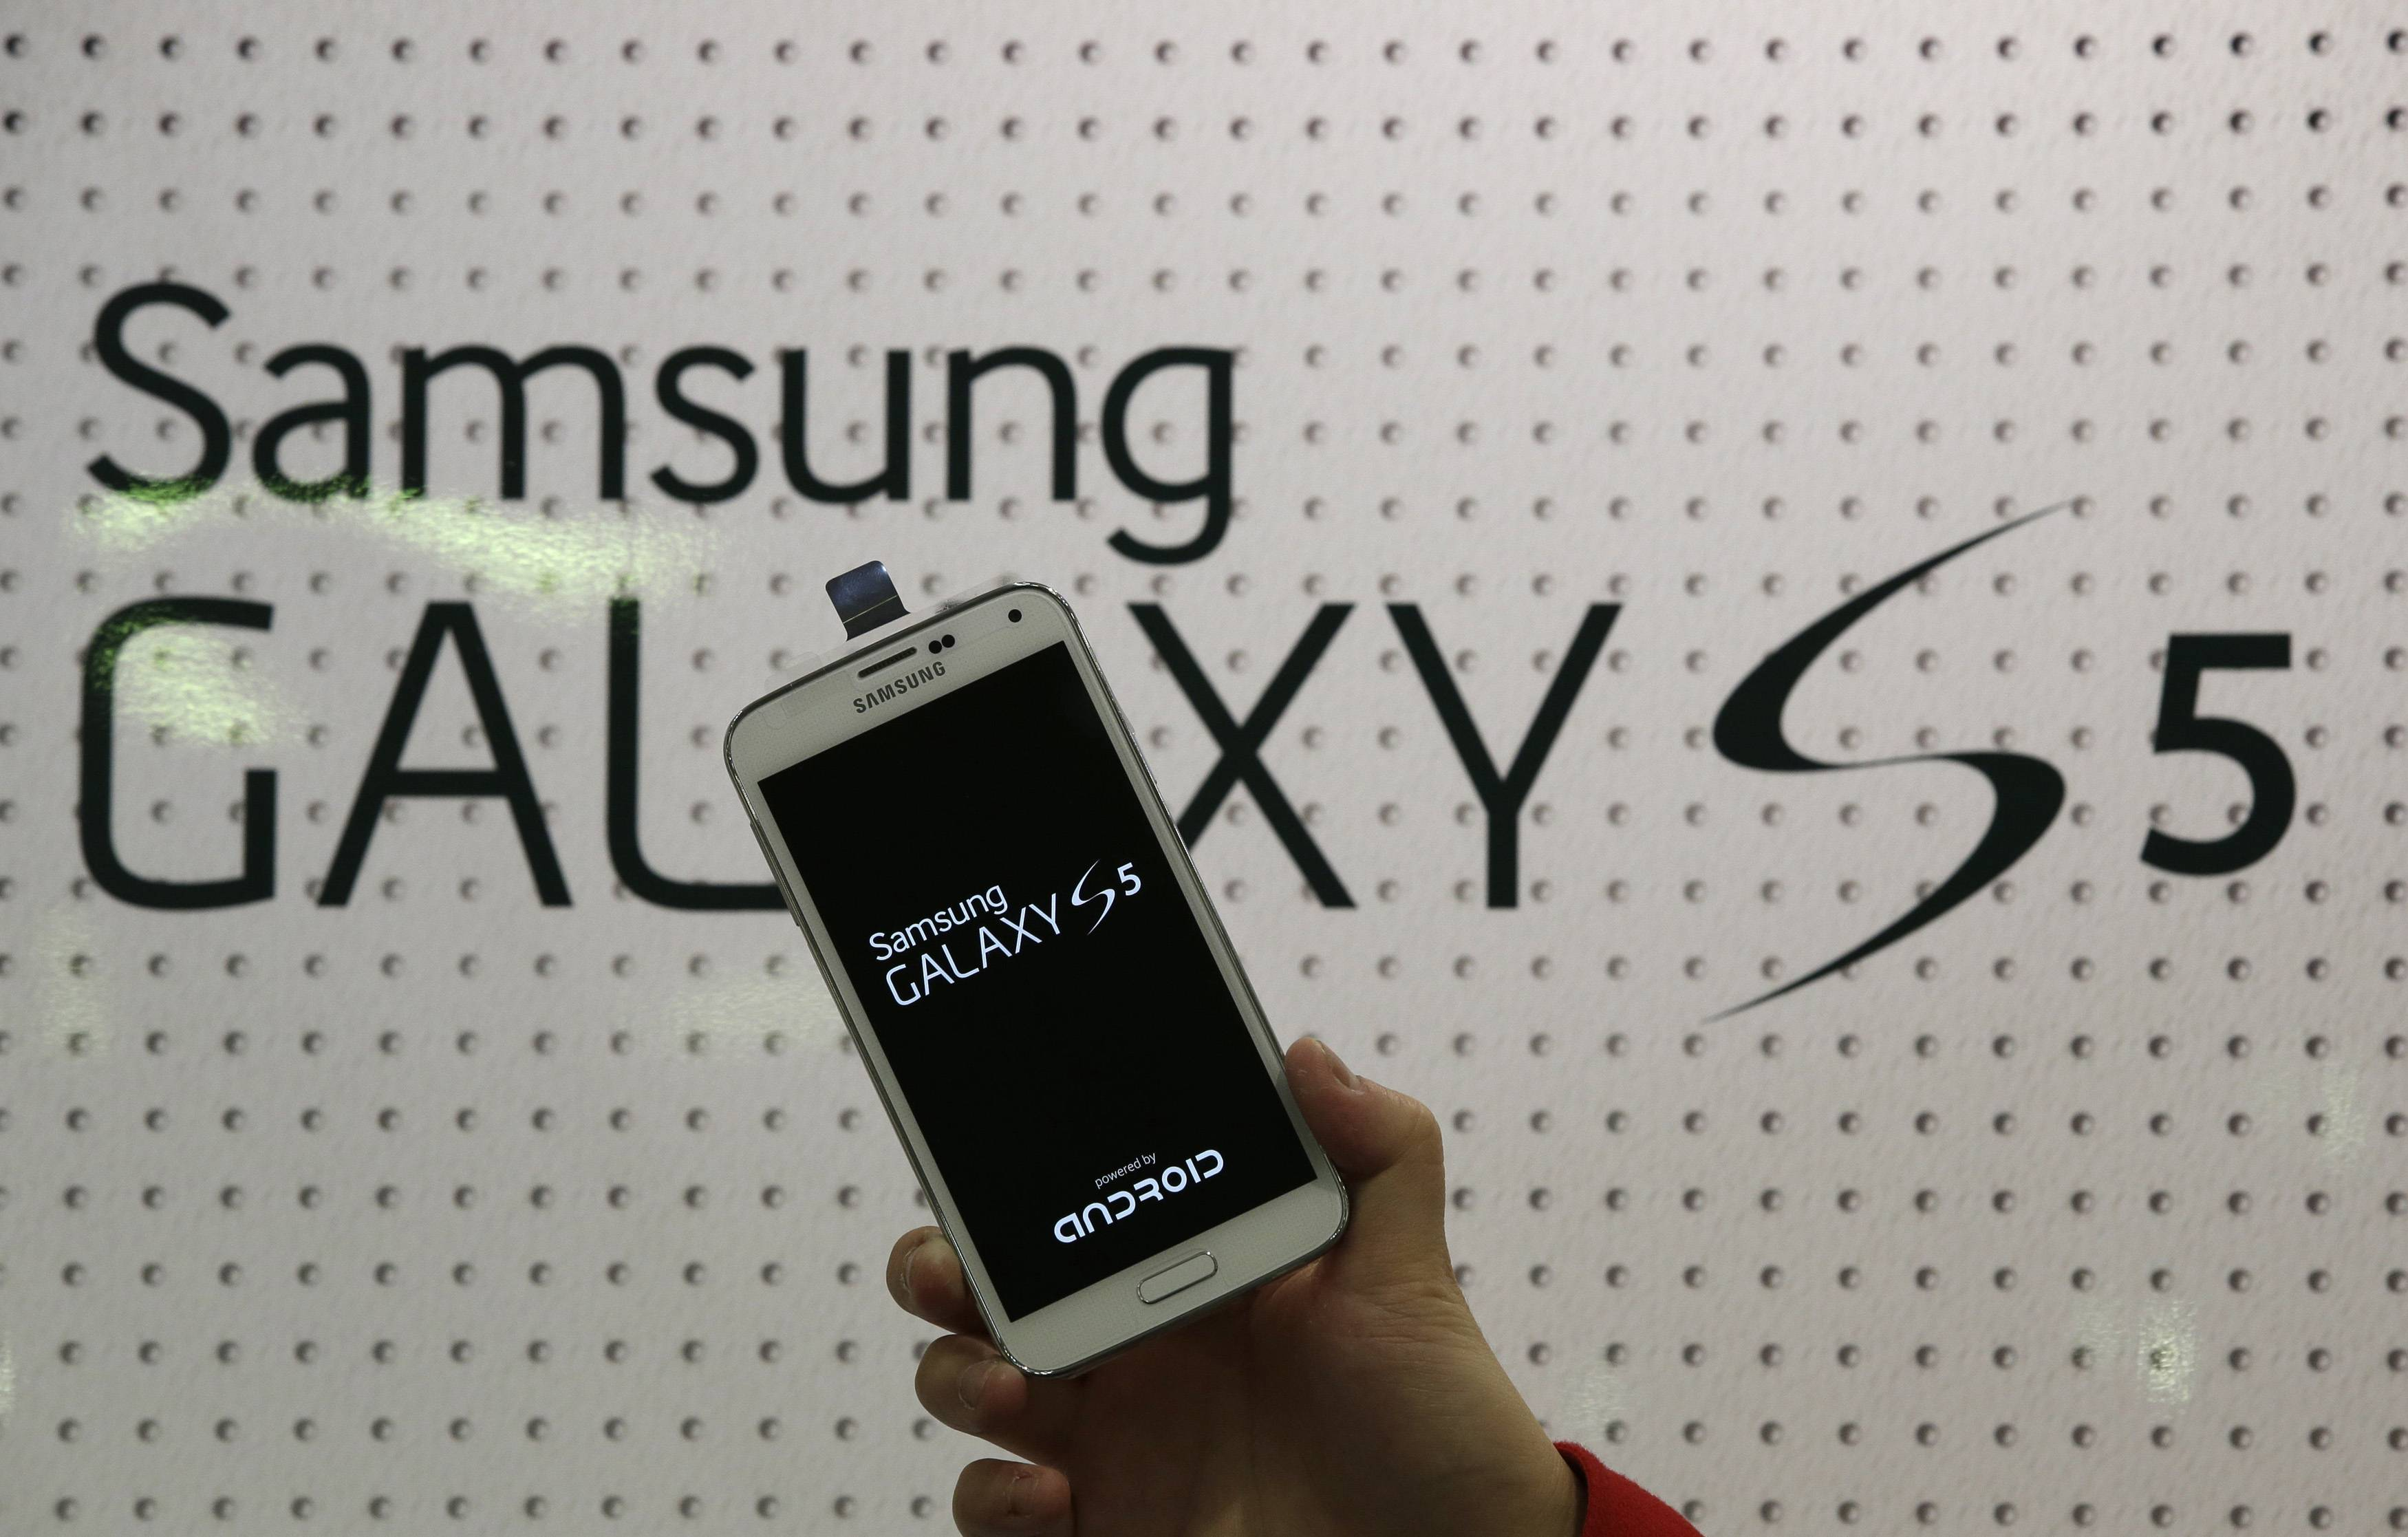 An employee shows Samsung's Galaxy S5 smartphone at a mobile phone shop in Seoul, South Korea. Samsung's new Galaxy S5 smartphone is more durable than last year's model and other leading Android phones, but the iPhone 5s outperformed all of them in part because of its smaller size, a new study finds.